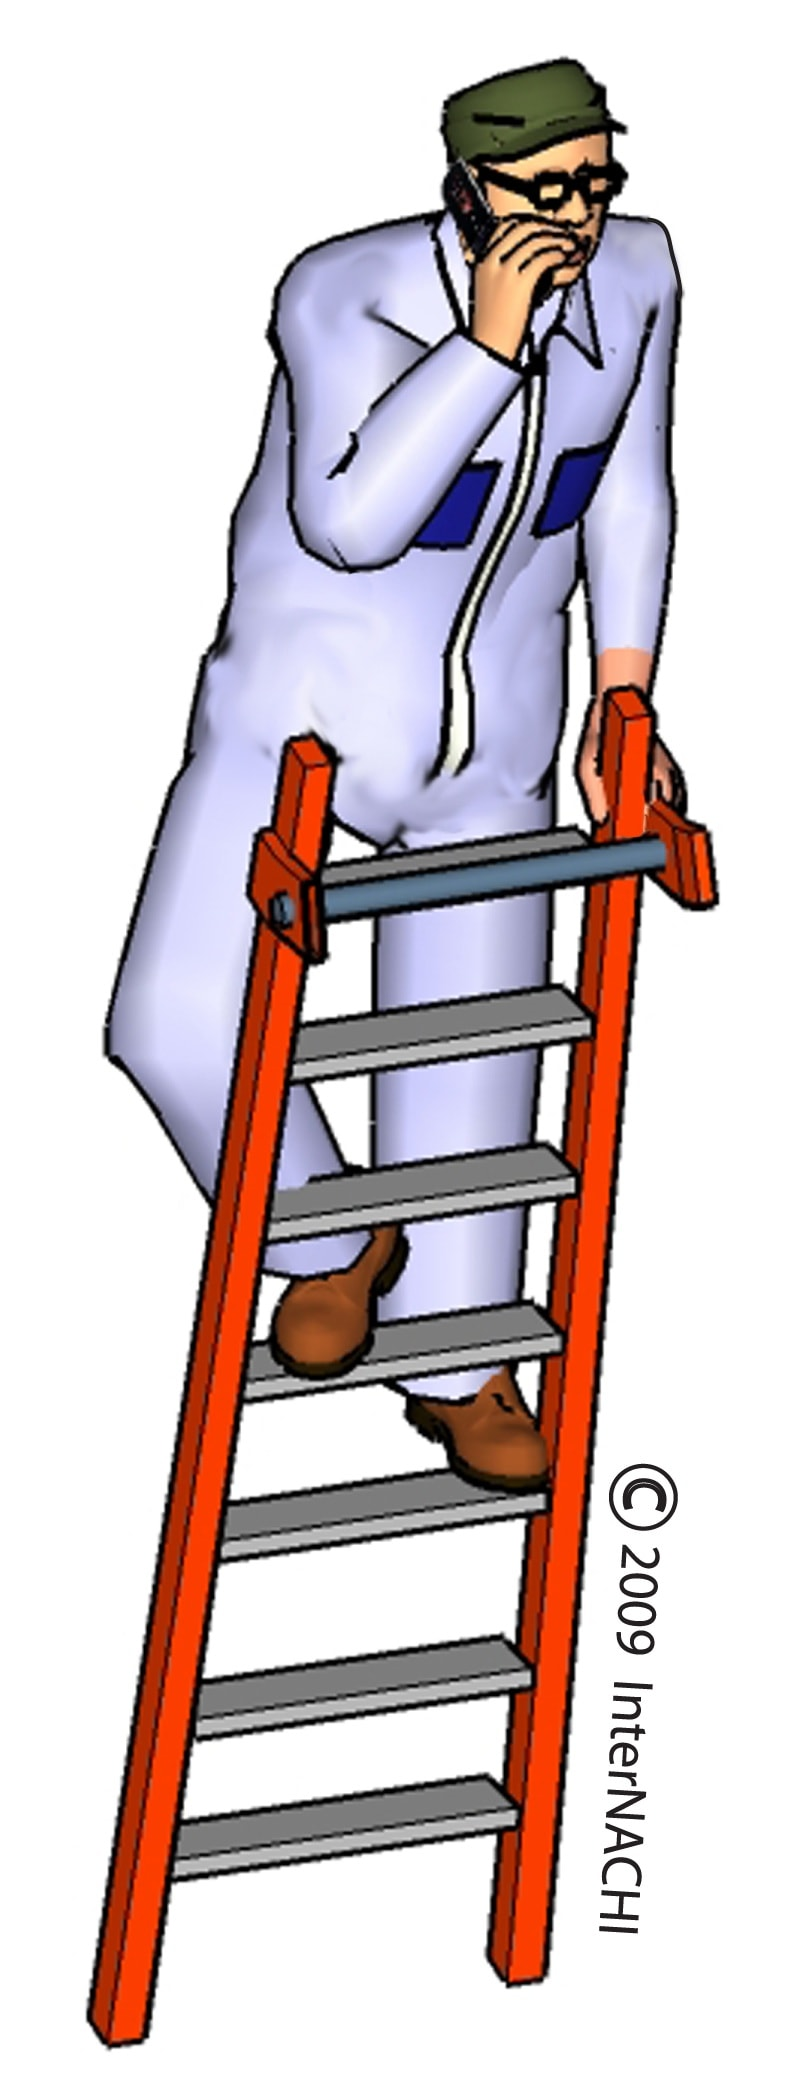 Inspector on ladder with cell phone.